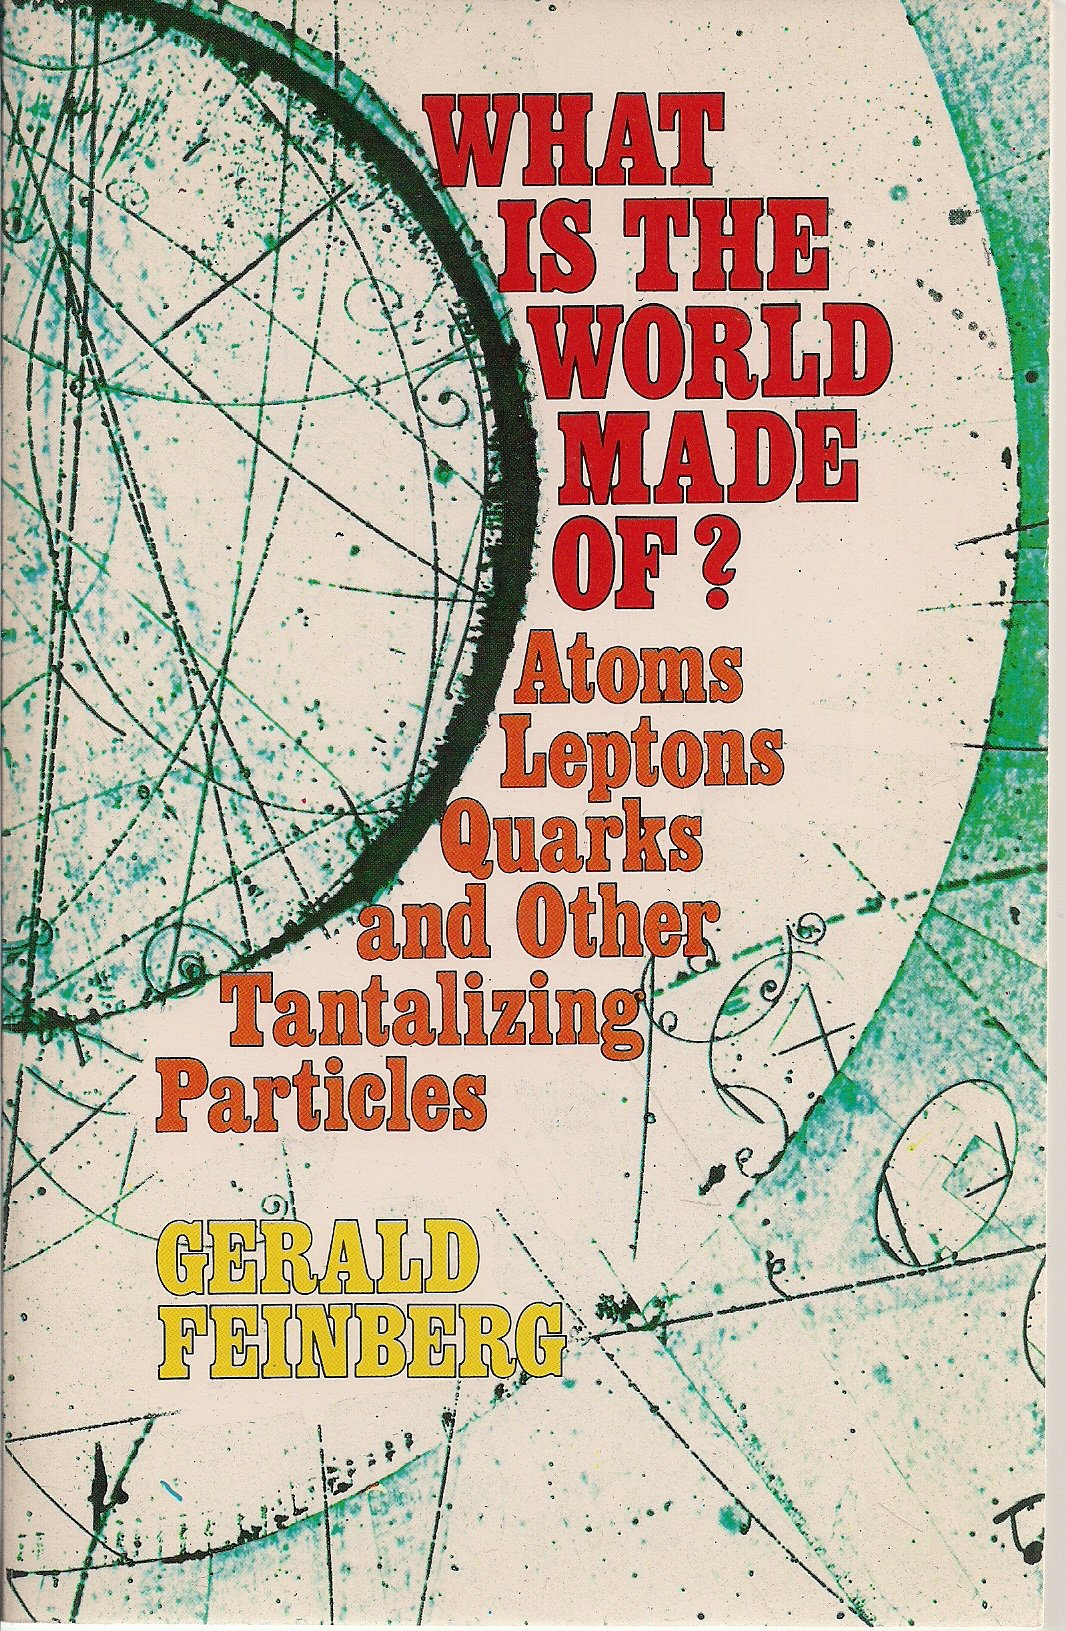 What is the world made of atoms leptons quarks and other tantalizing particles gerald feinberg 9780385076944 amazon com books